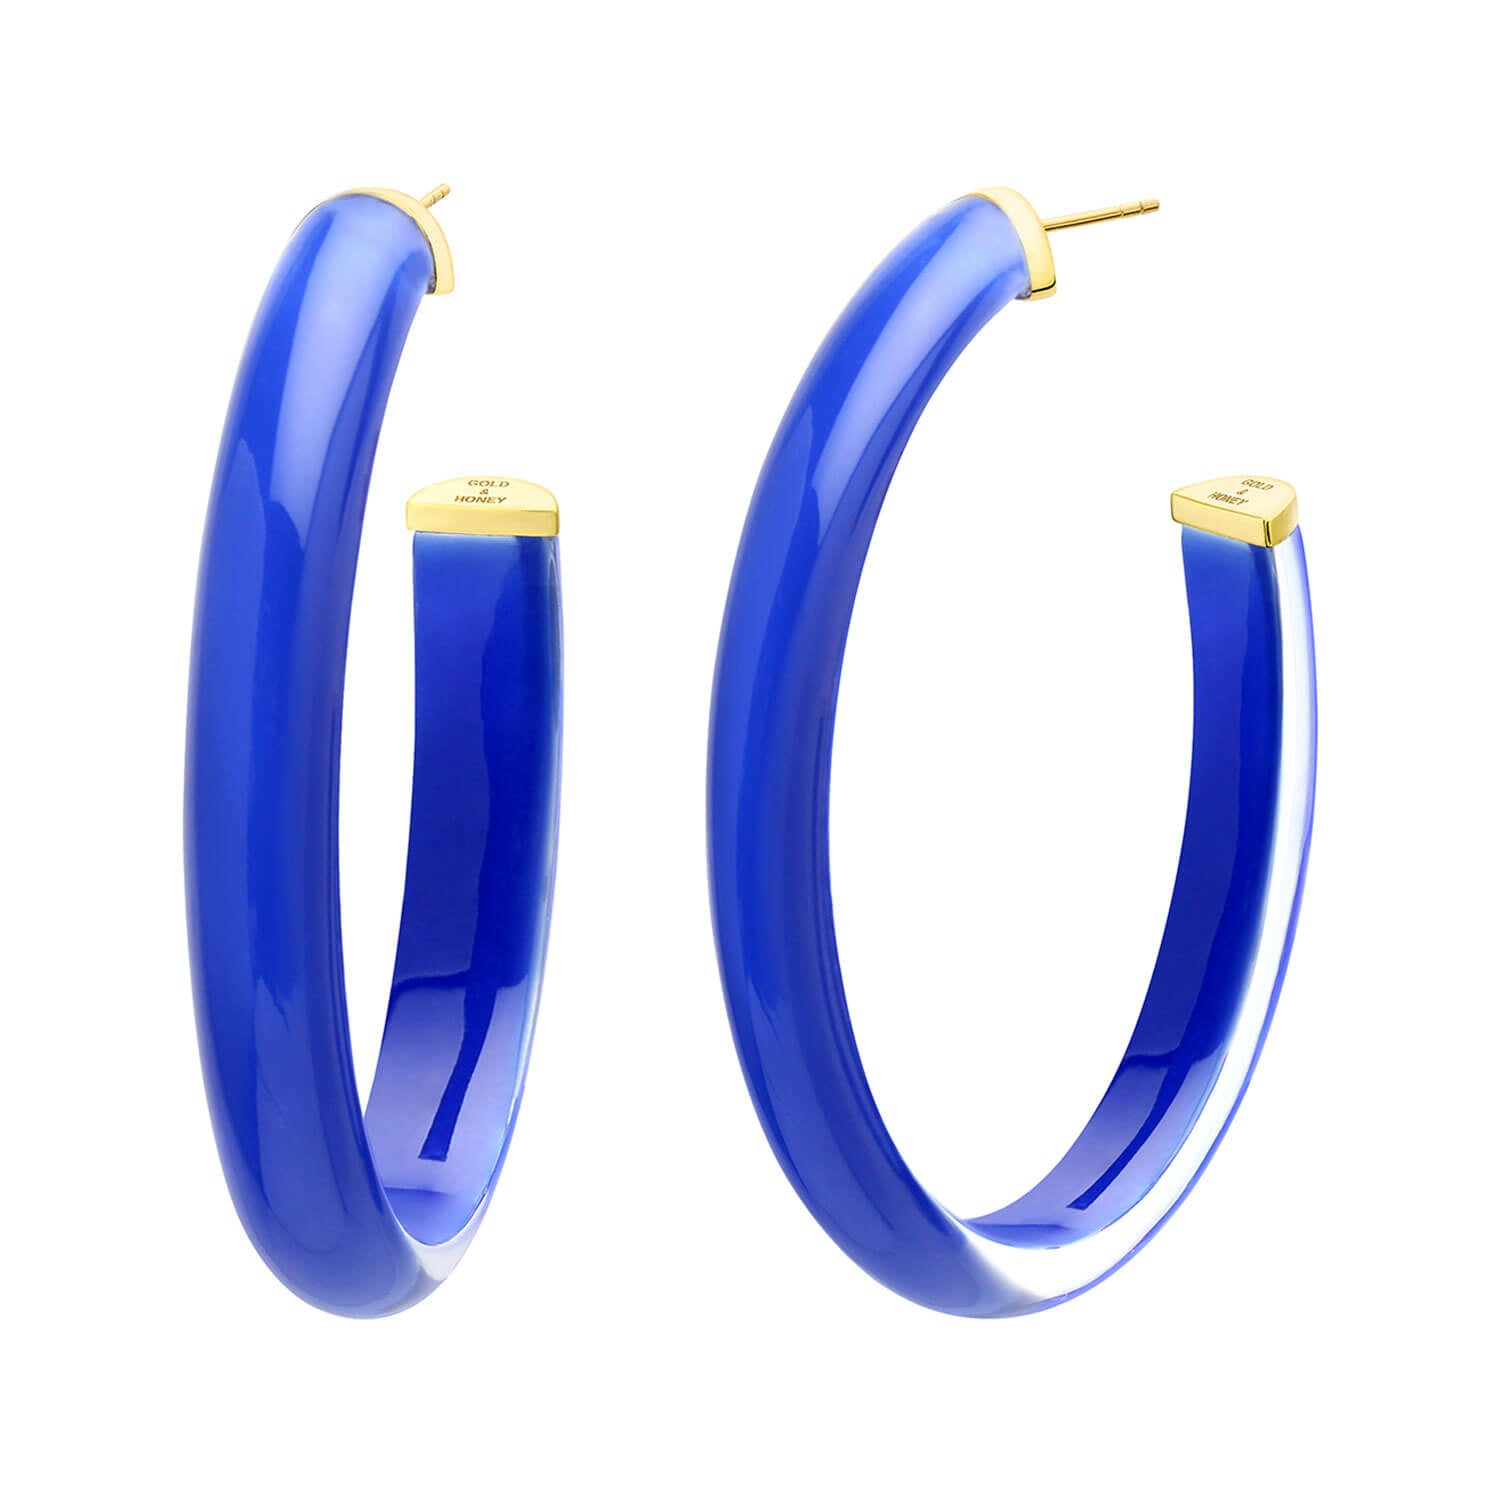 XL Oval Illusion Lucite Hoops in ROYAL BLUE